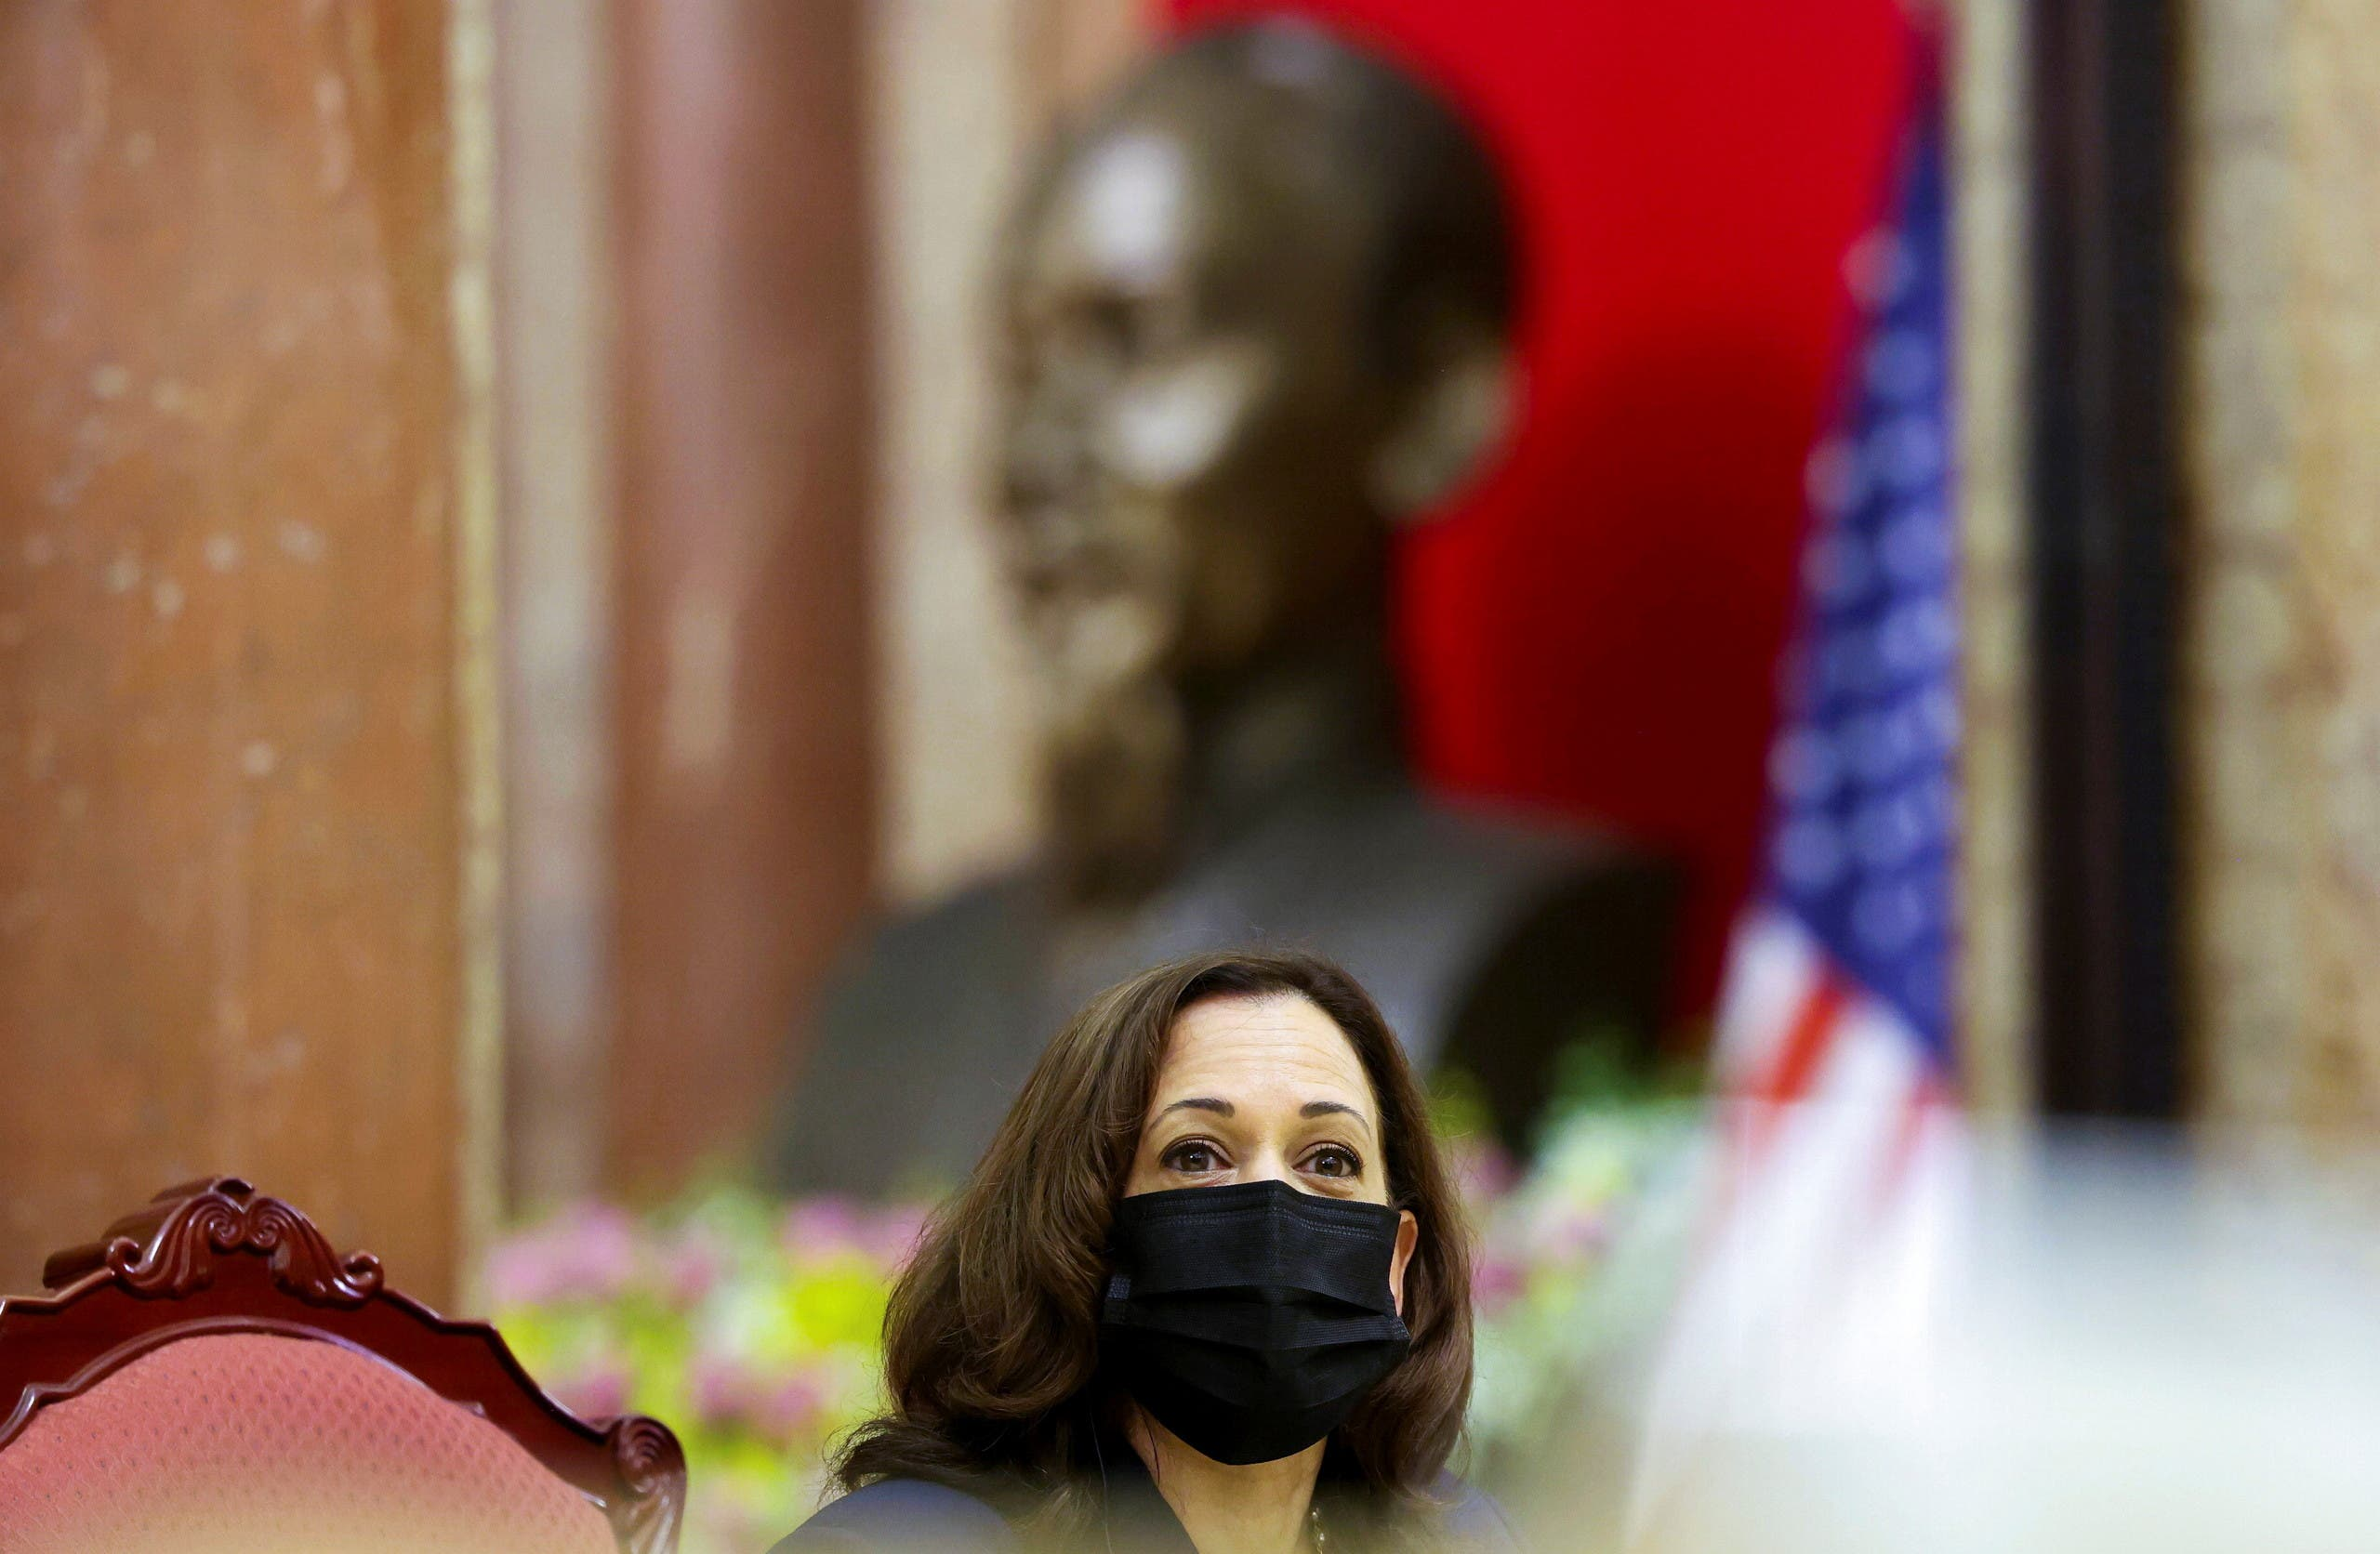 US Vice President Kamala Harris looks on during her meeting with Vietnam's Vice President Vo Thi Anh Xuan in the Gold Room of the Presidential Palace, in Hanoi, Vietnam, August, 25, 2021. (Reuters)